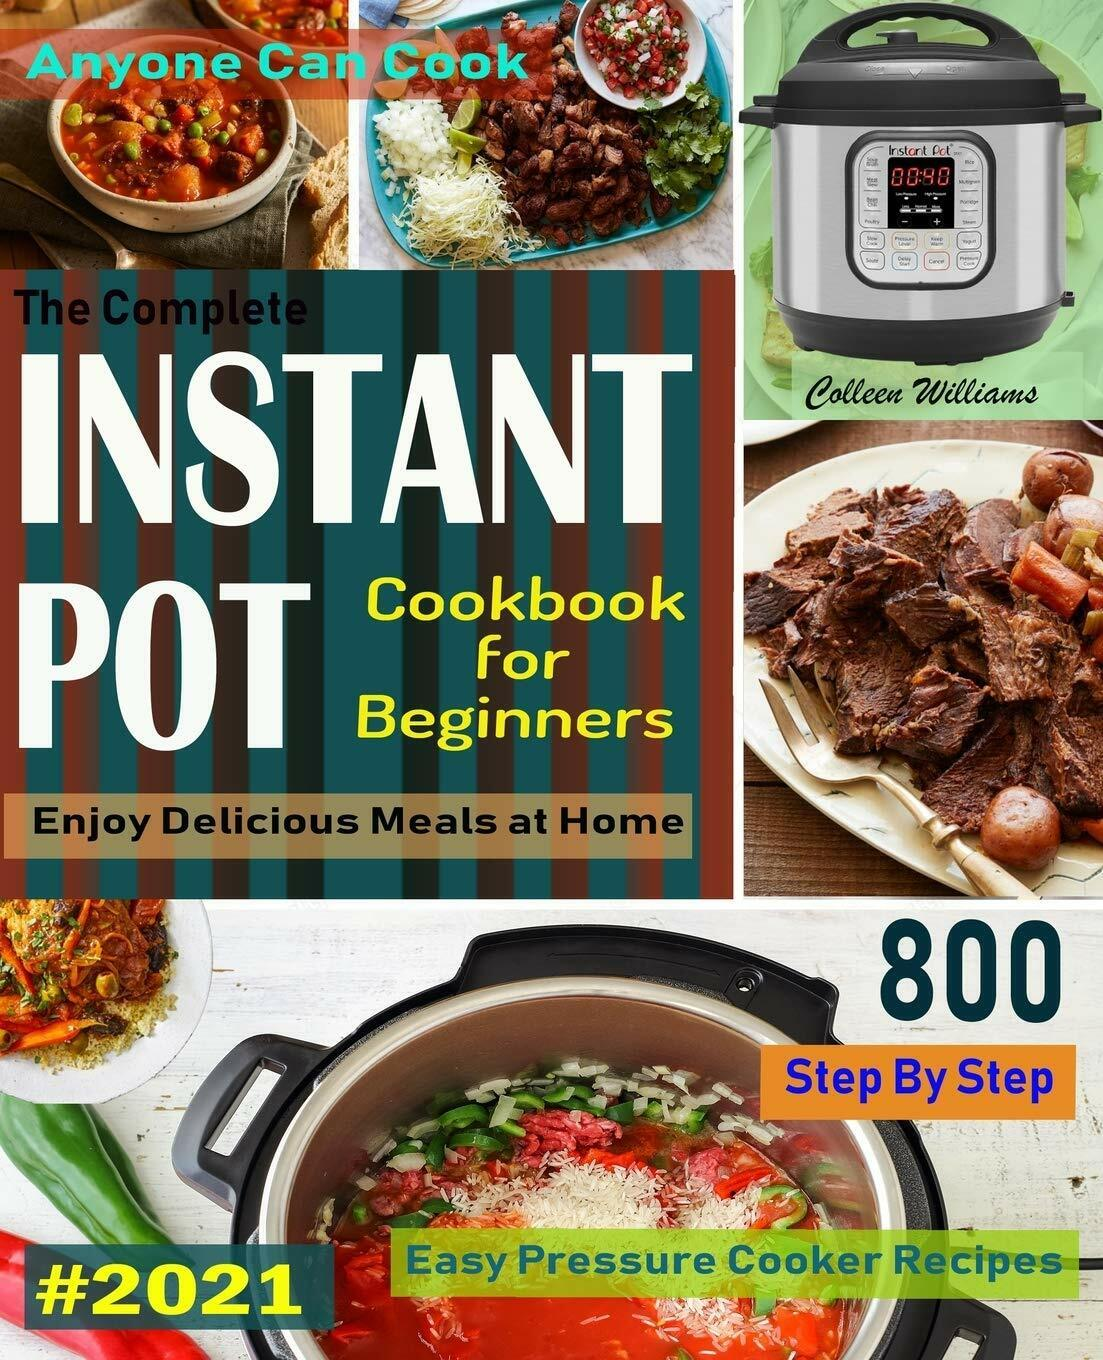 The Complete Instant Pot Cookbook For Beginners #2021: Step By Step Easy Recipes